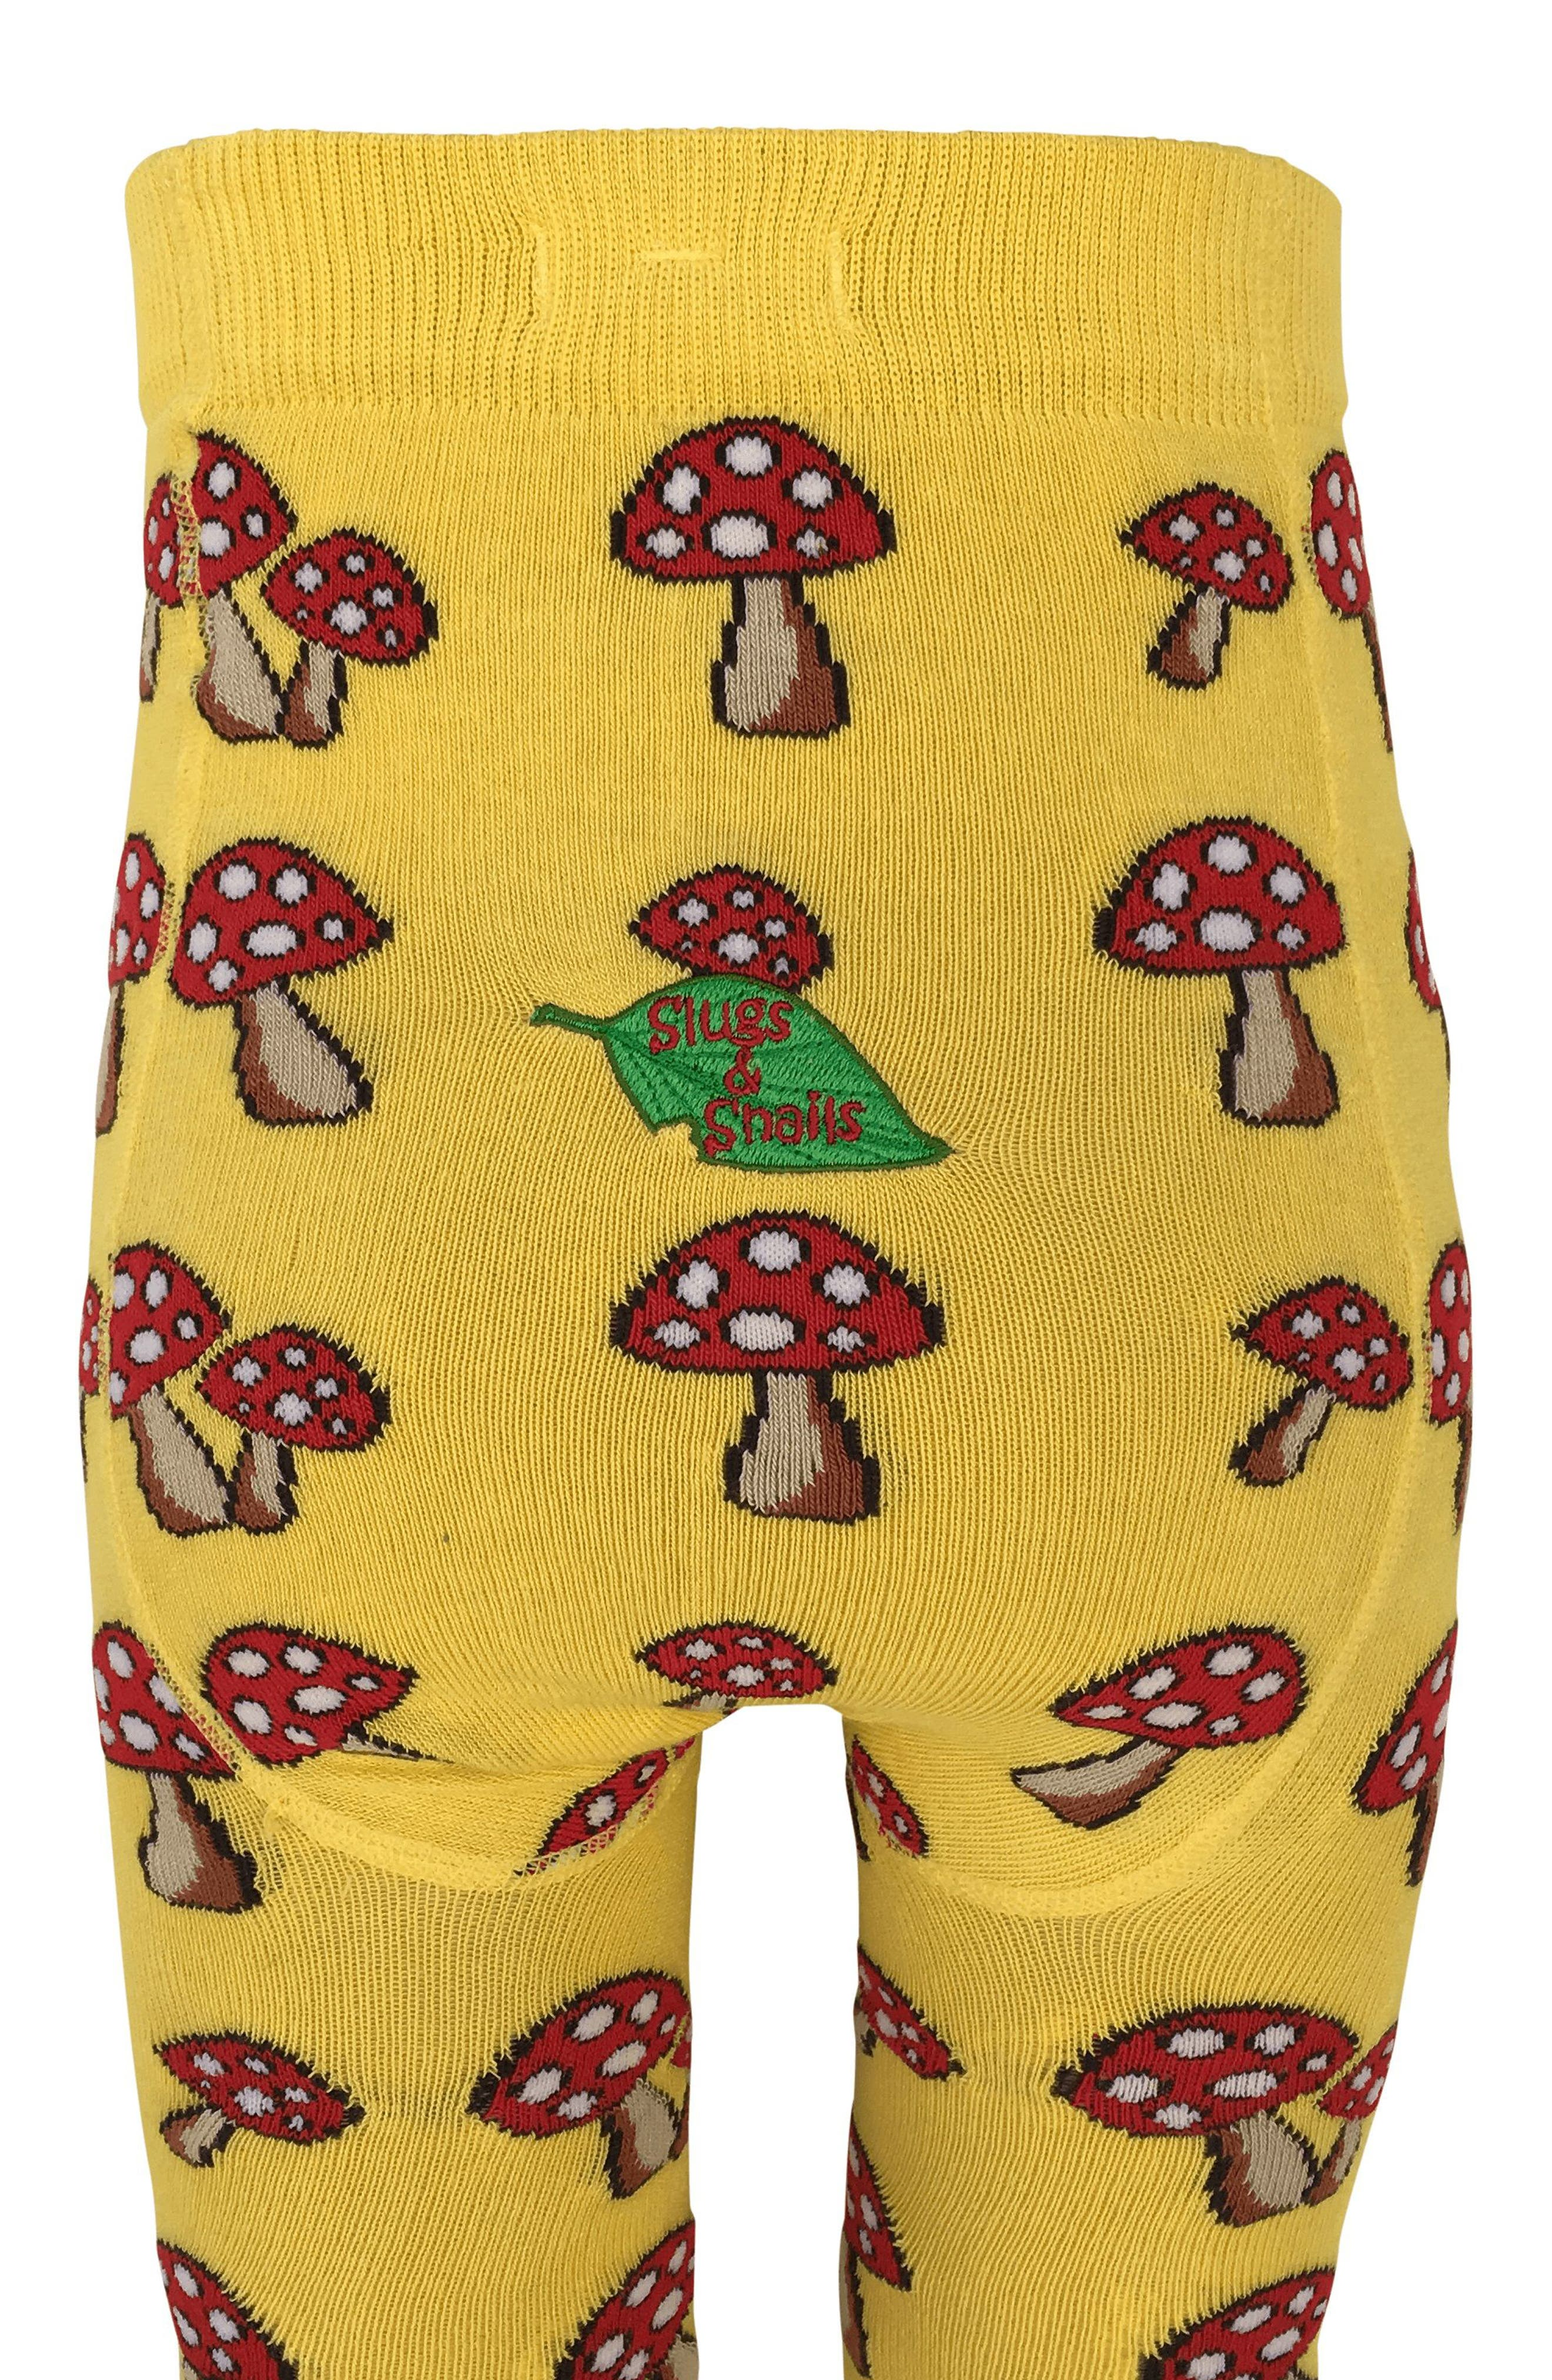 Toadstool Tights,                             Alternate thumbnail 2, color,                             Yellow